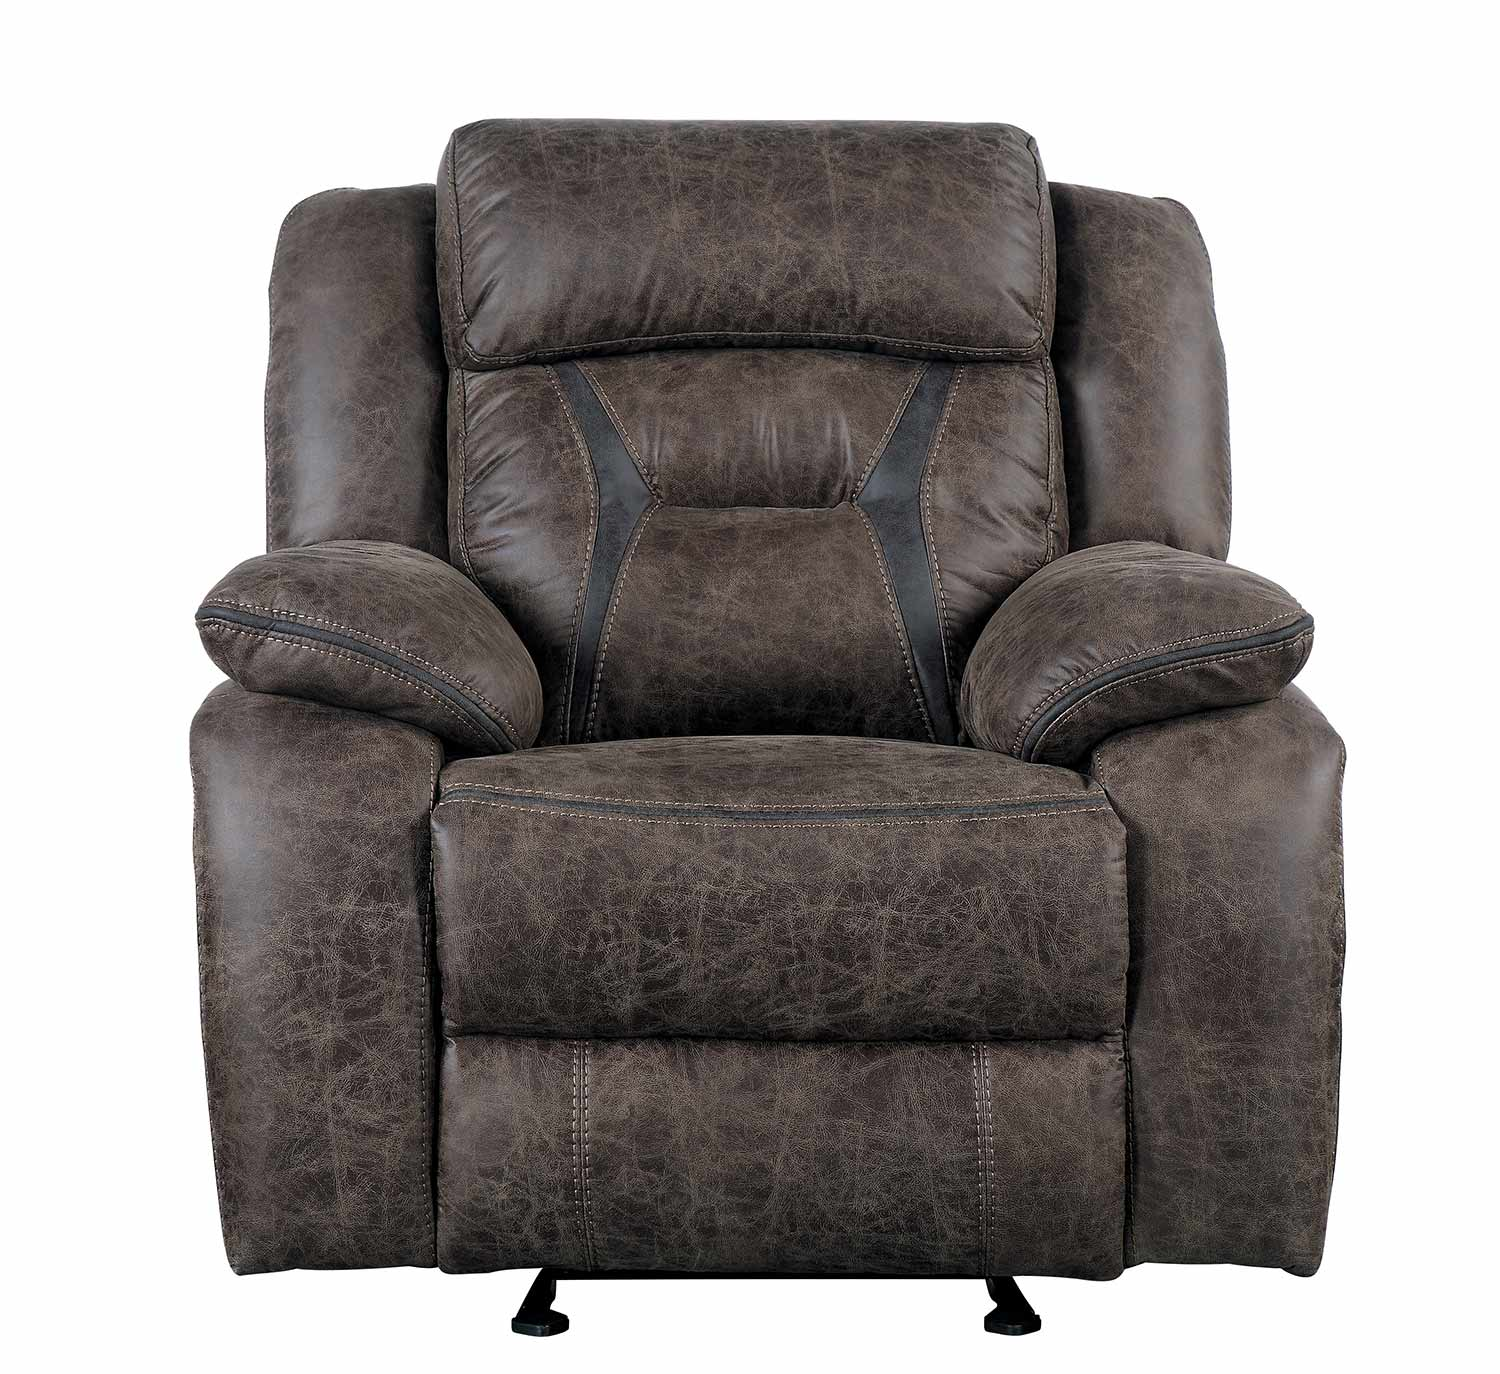 Homelegance Madrona Gilder Reclining Chair - Dark brown polished microfiber